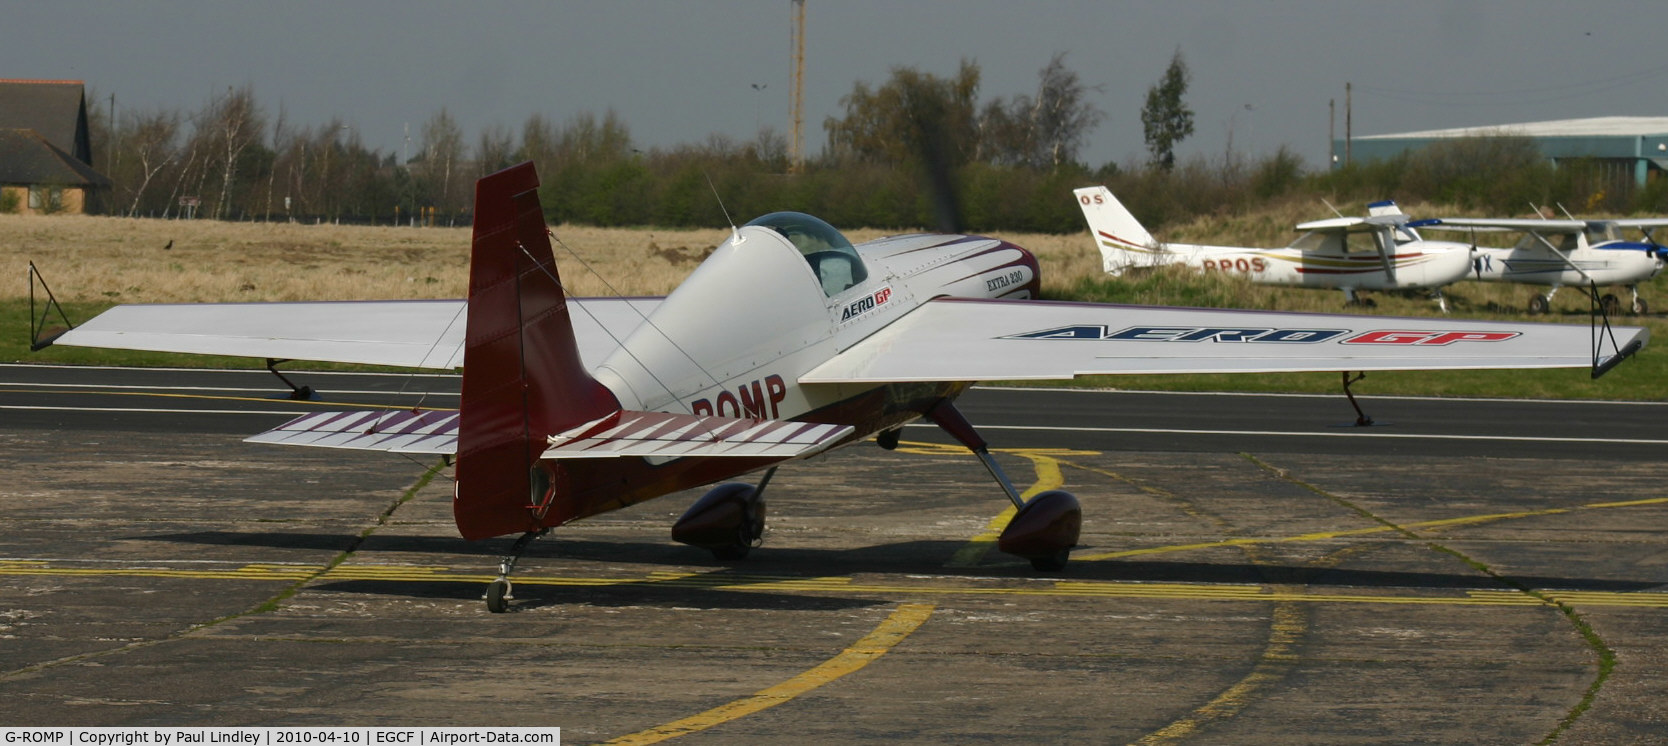 G-ROMP, 1987 Extra EA-230H C/N 001, The Icicle trophy